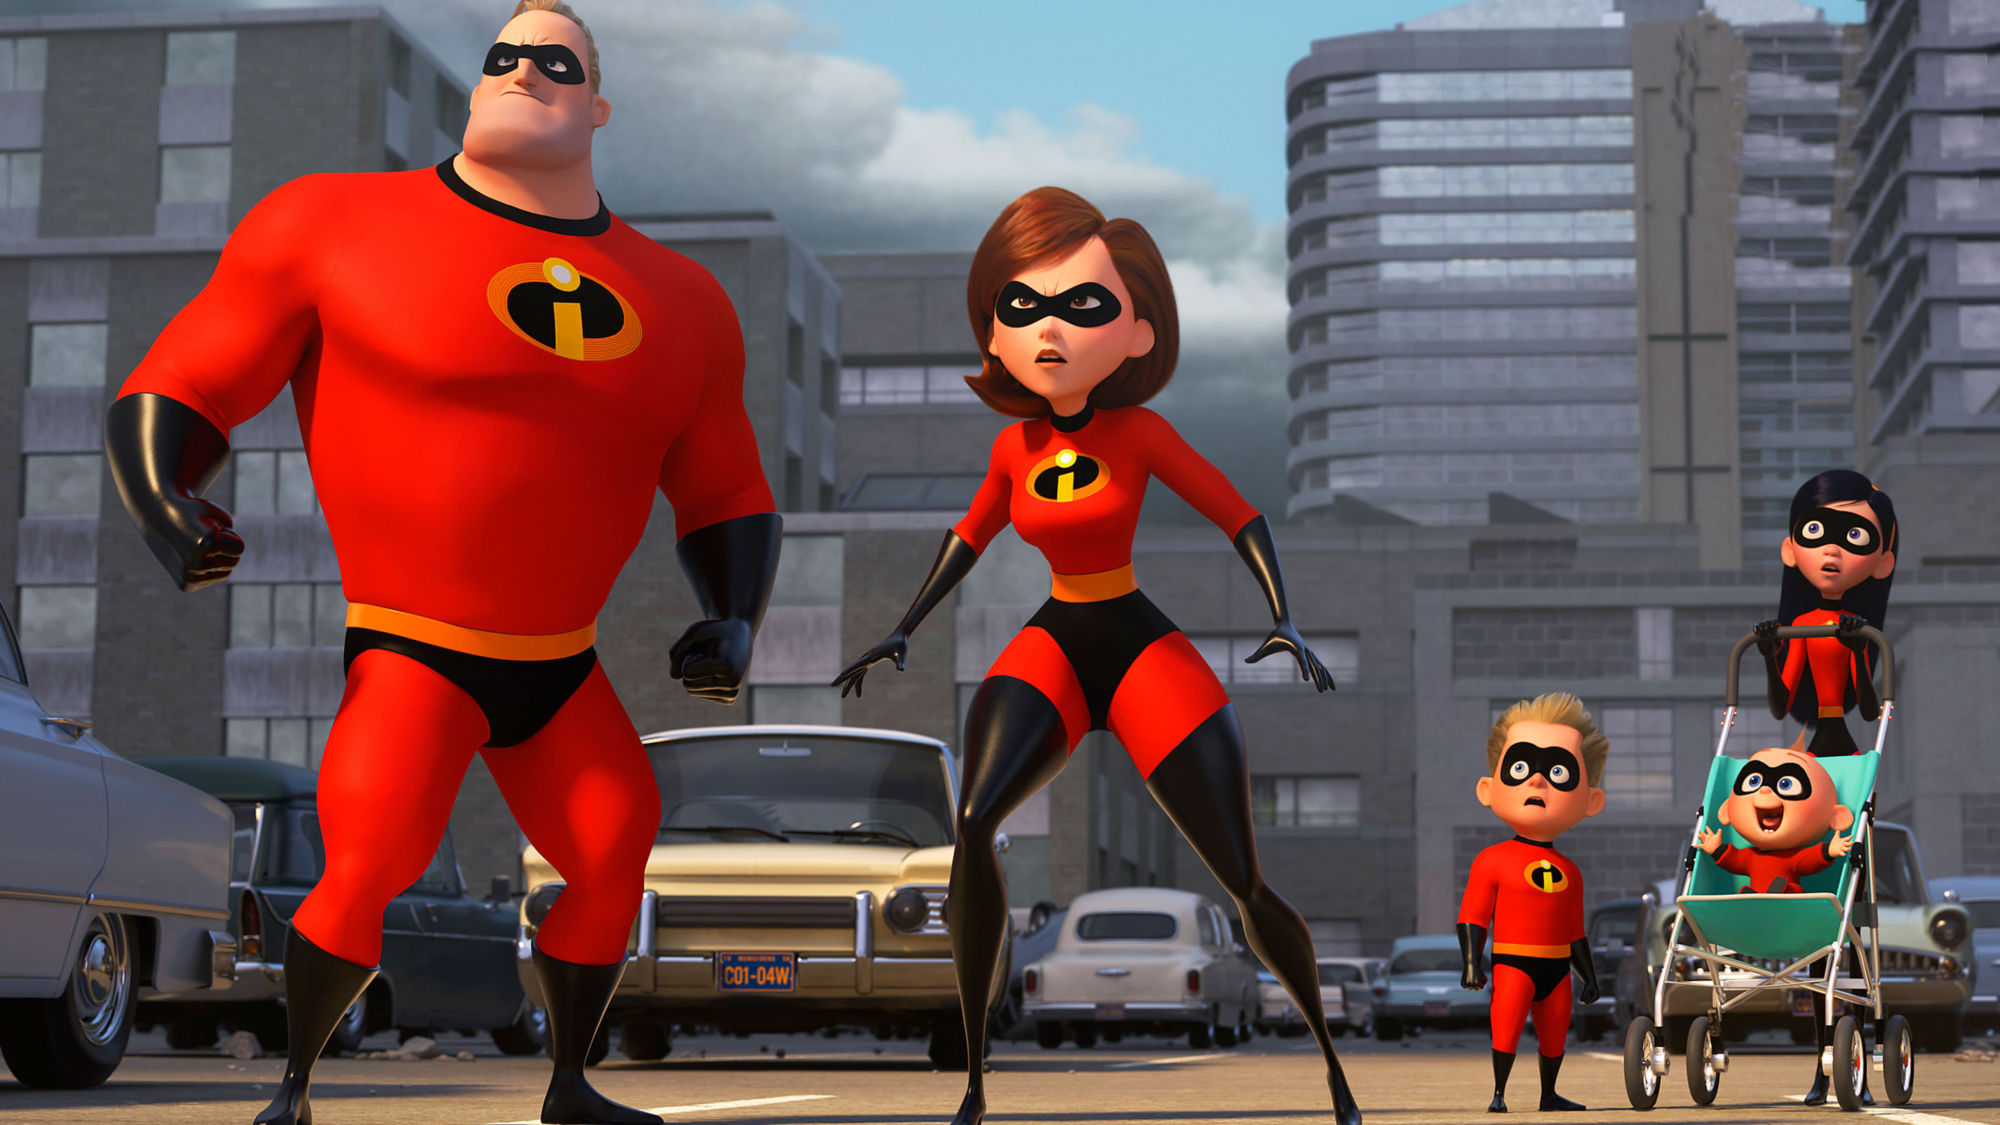 mr-incredible-elastigirl-violet-parr-and-dash-in-the-incredibles-2-2018-qc-3840x2160